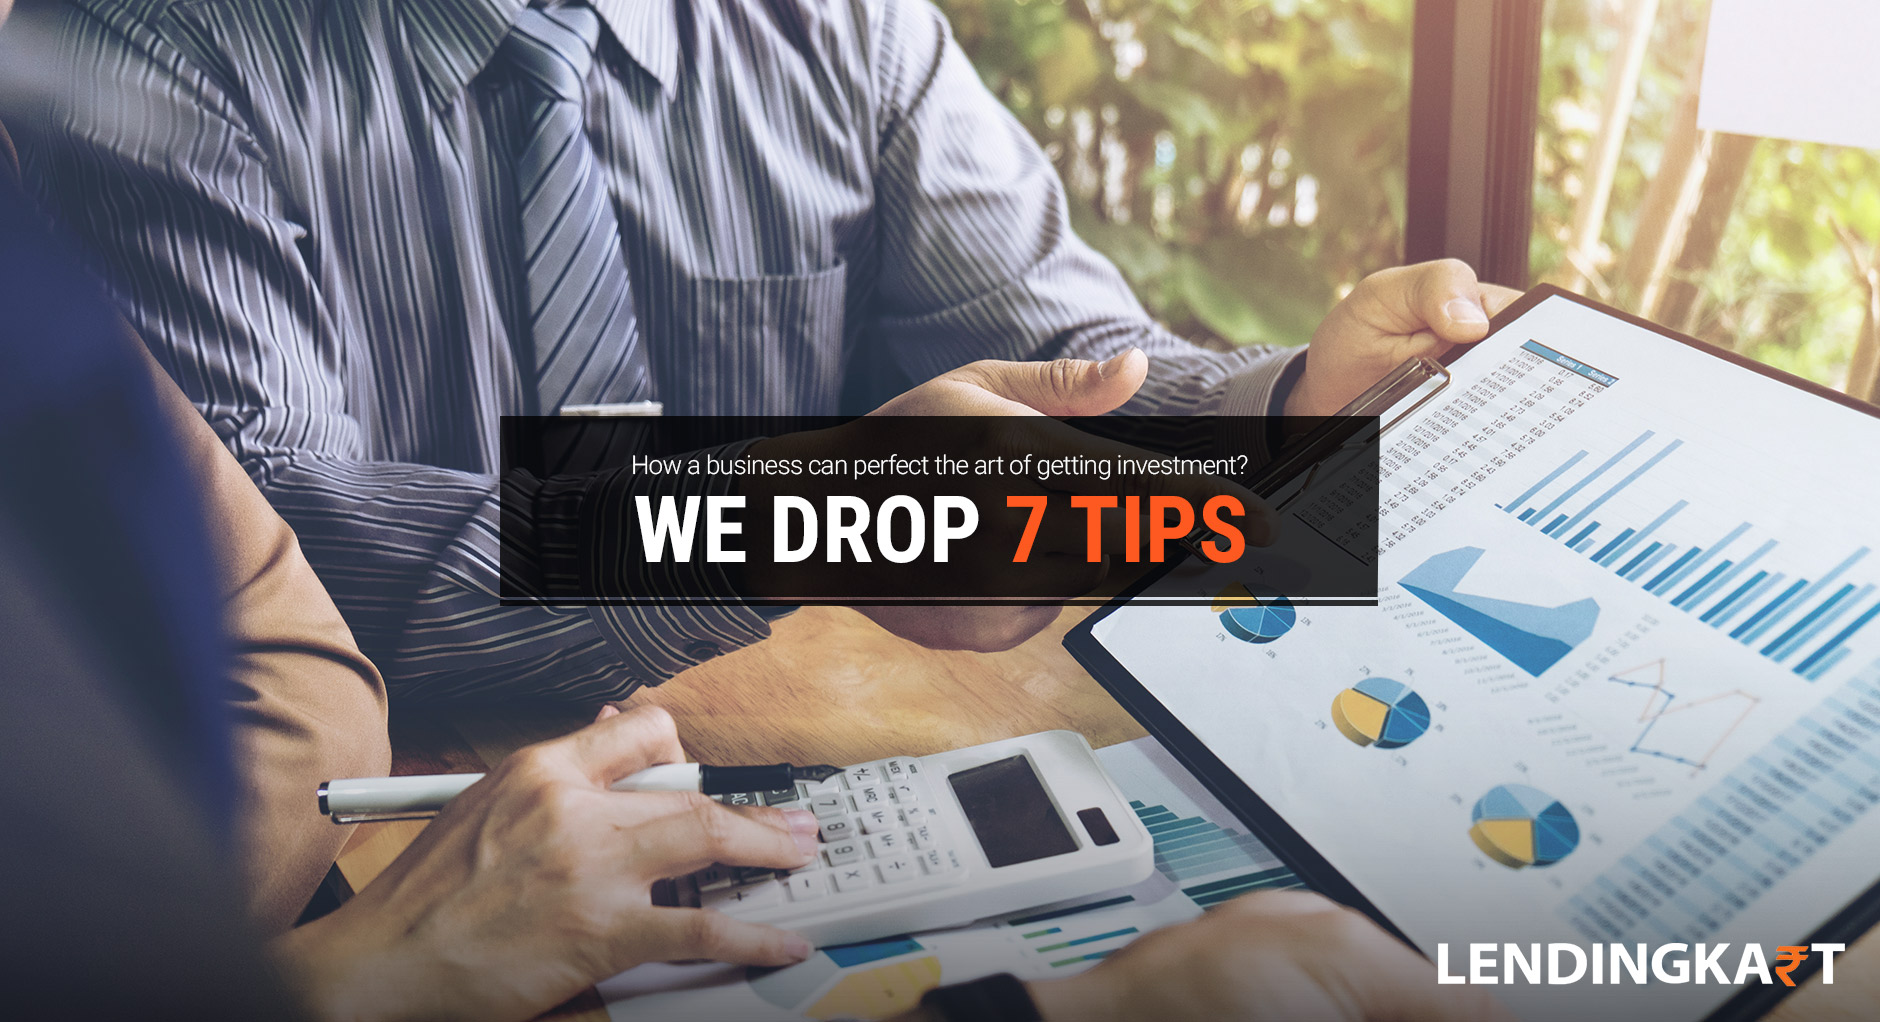 How a Business can Perfect the Art of Getting Investment We Drop 7 Tips